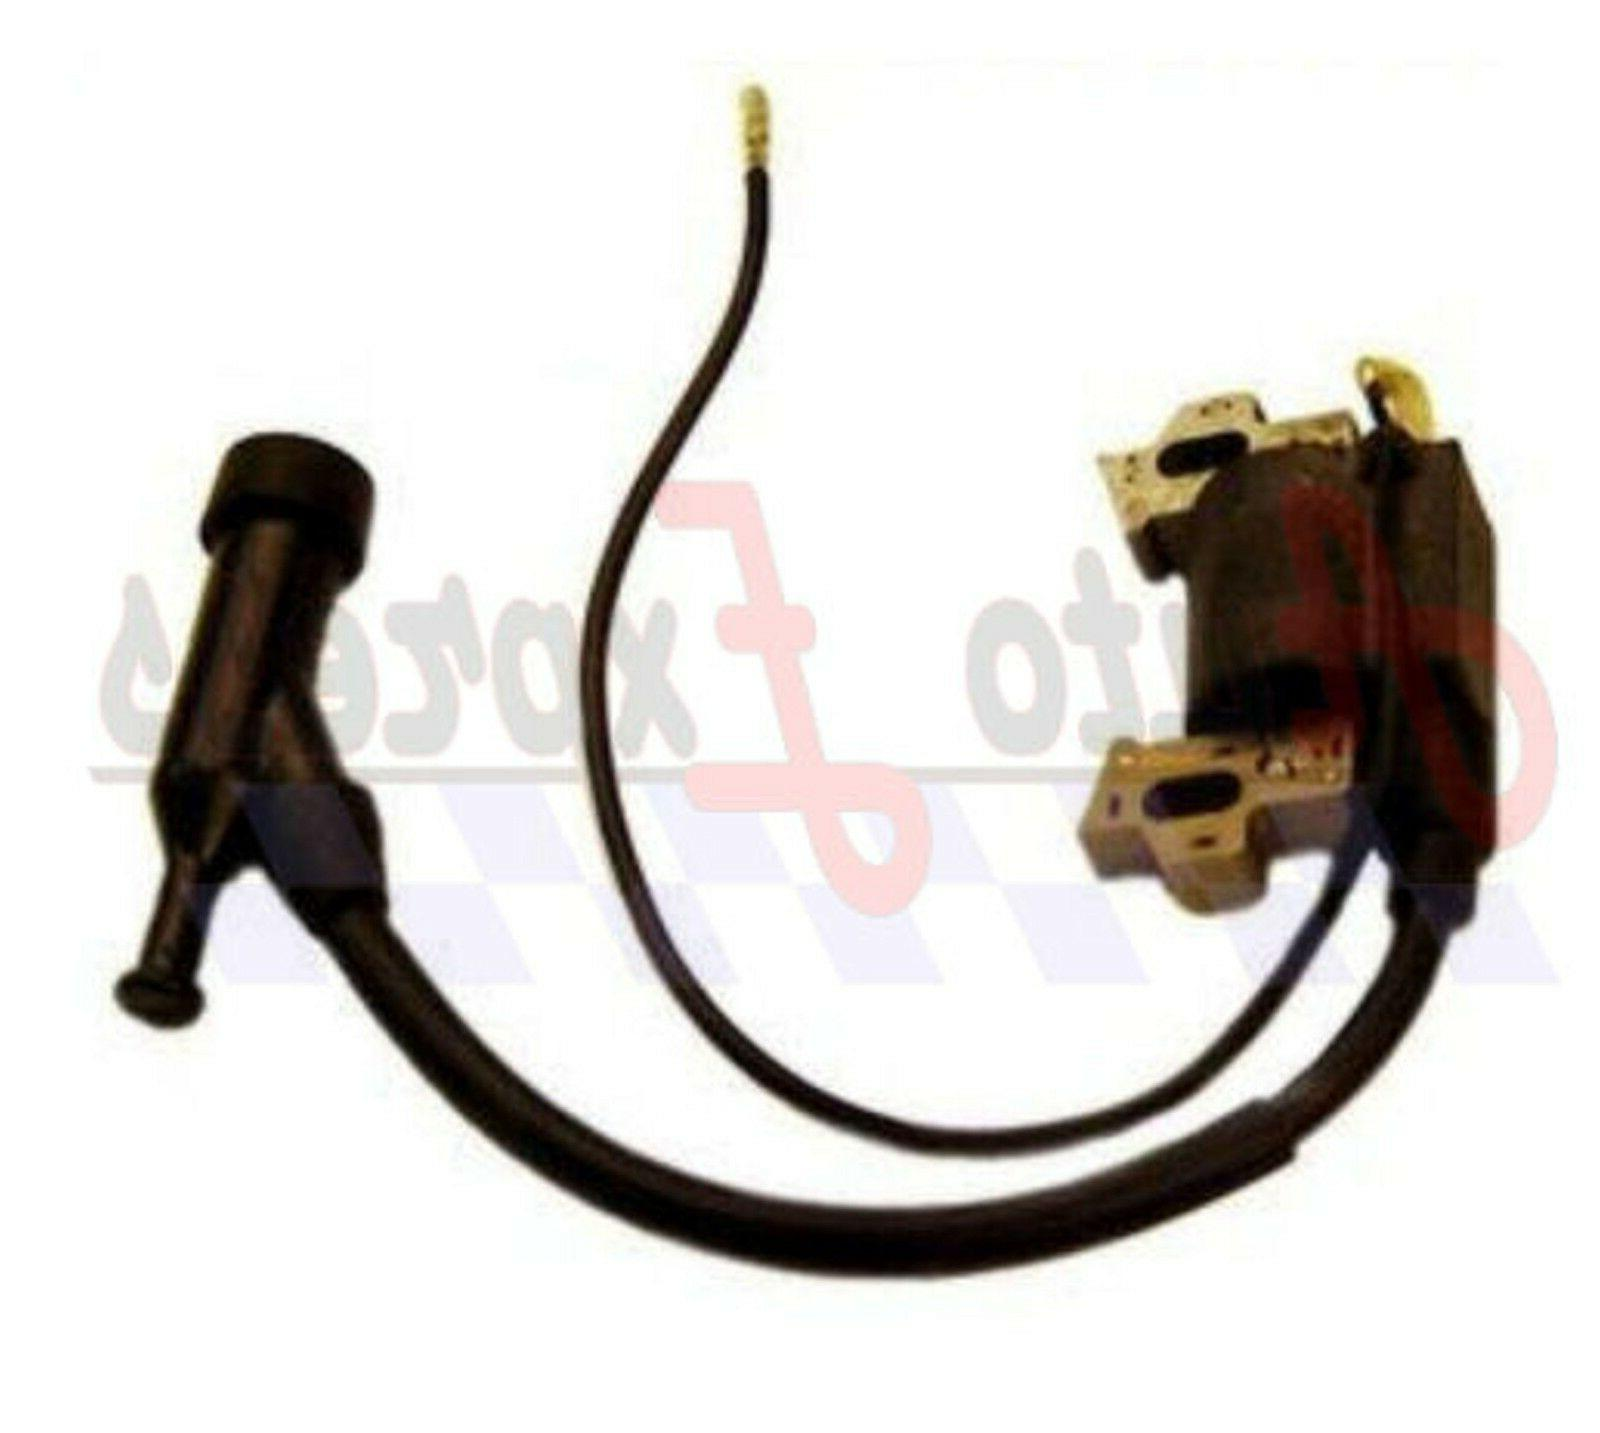 NEW IGNITION COIL FITS HONDA GX160 & GX200 5.5HP 6.5HP